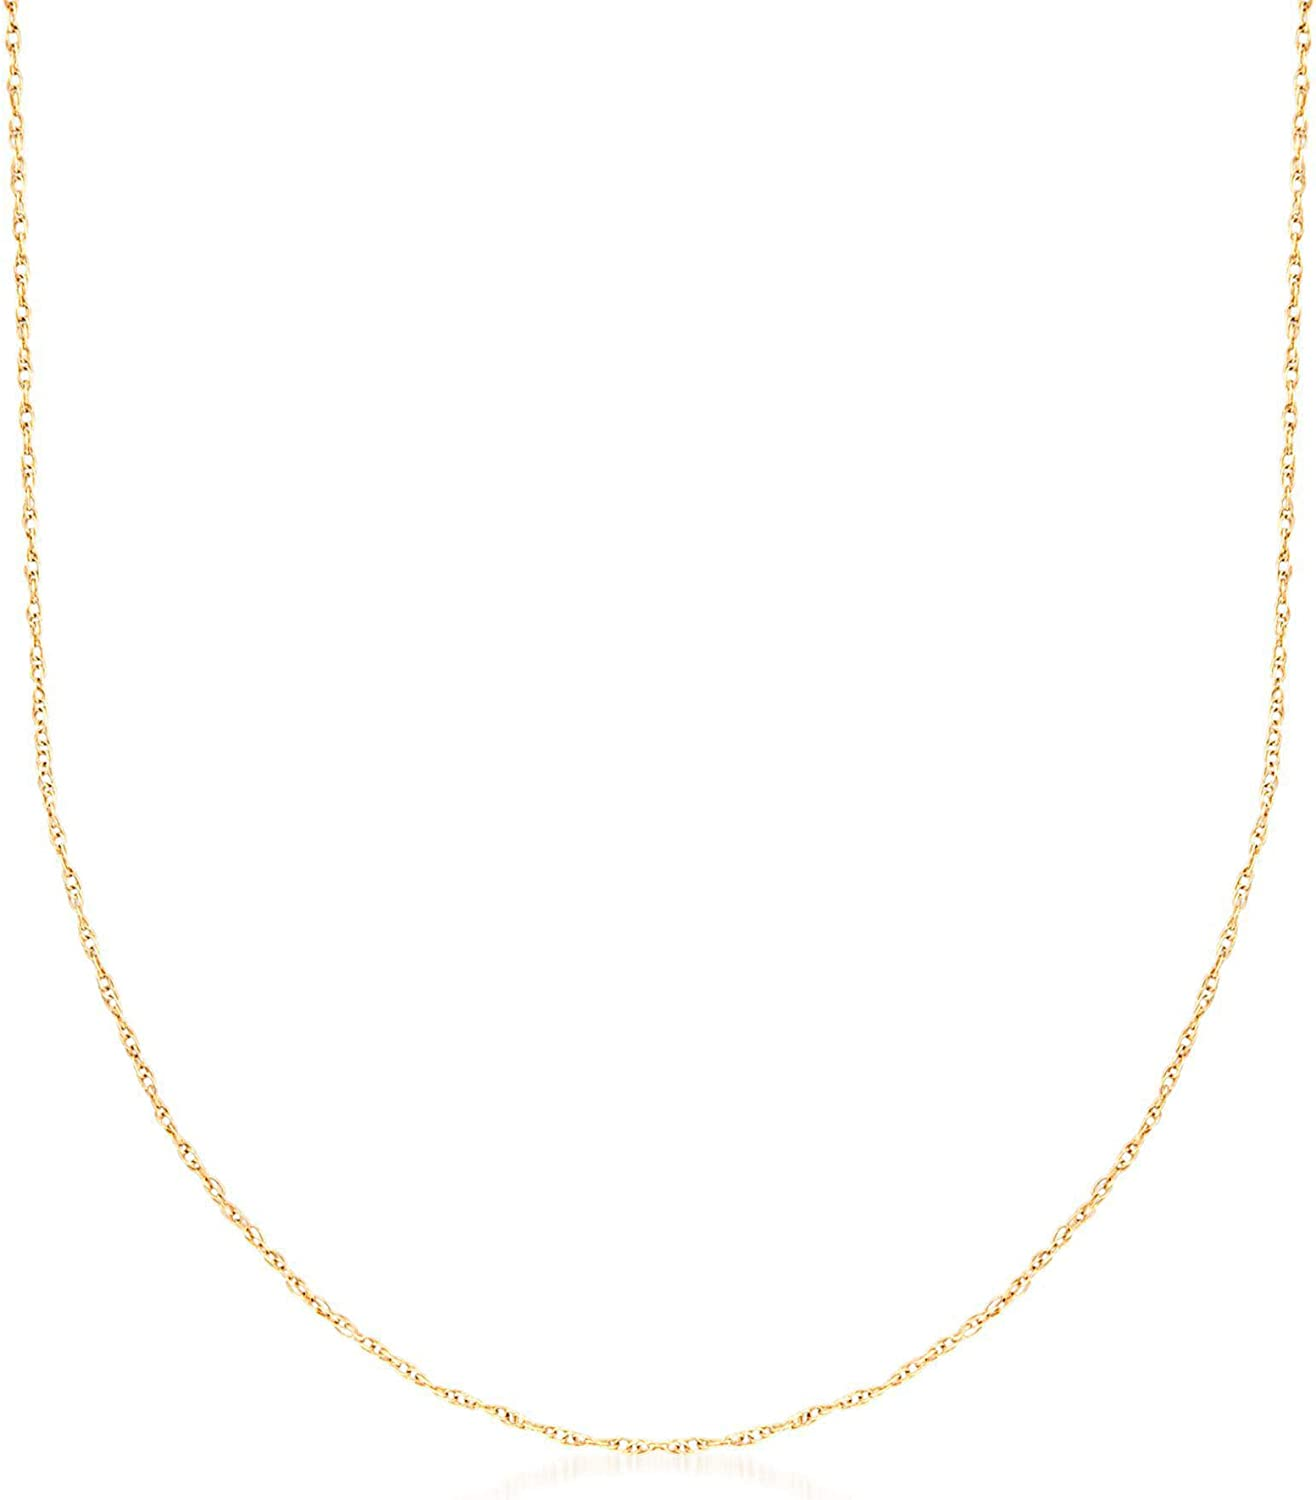 Ross-Simons .7mm 14kt Yellow Gold Rope Chain Necklace